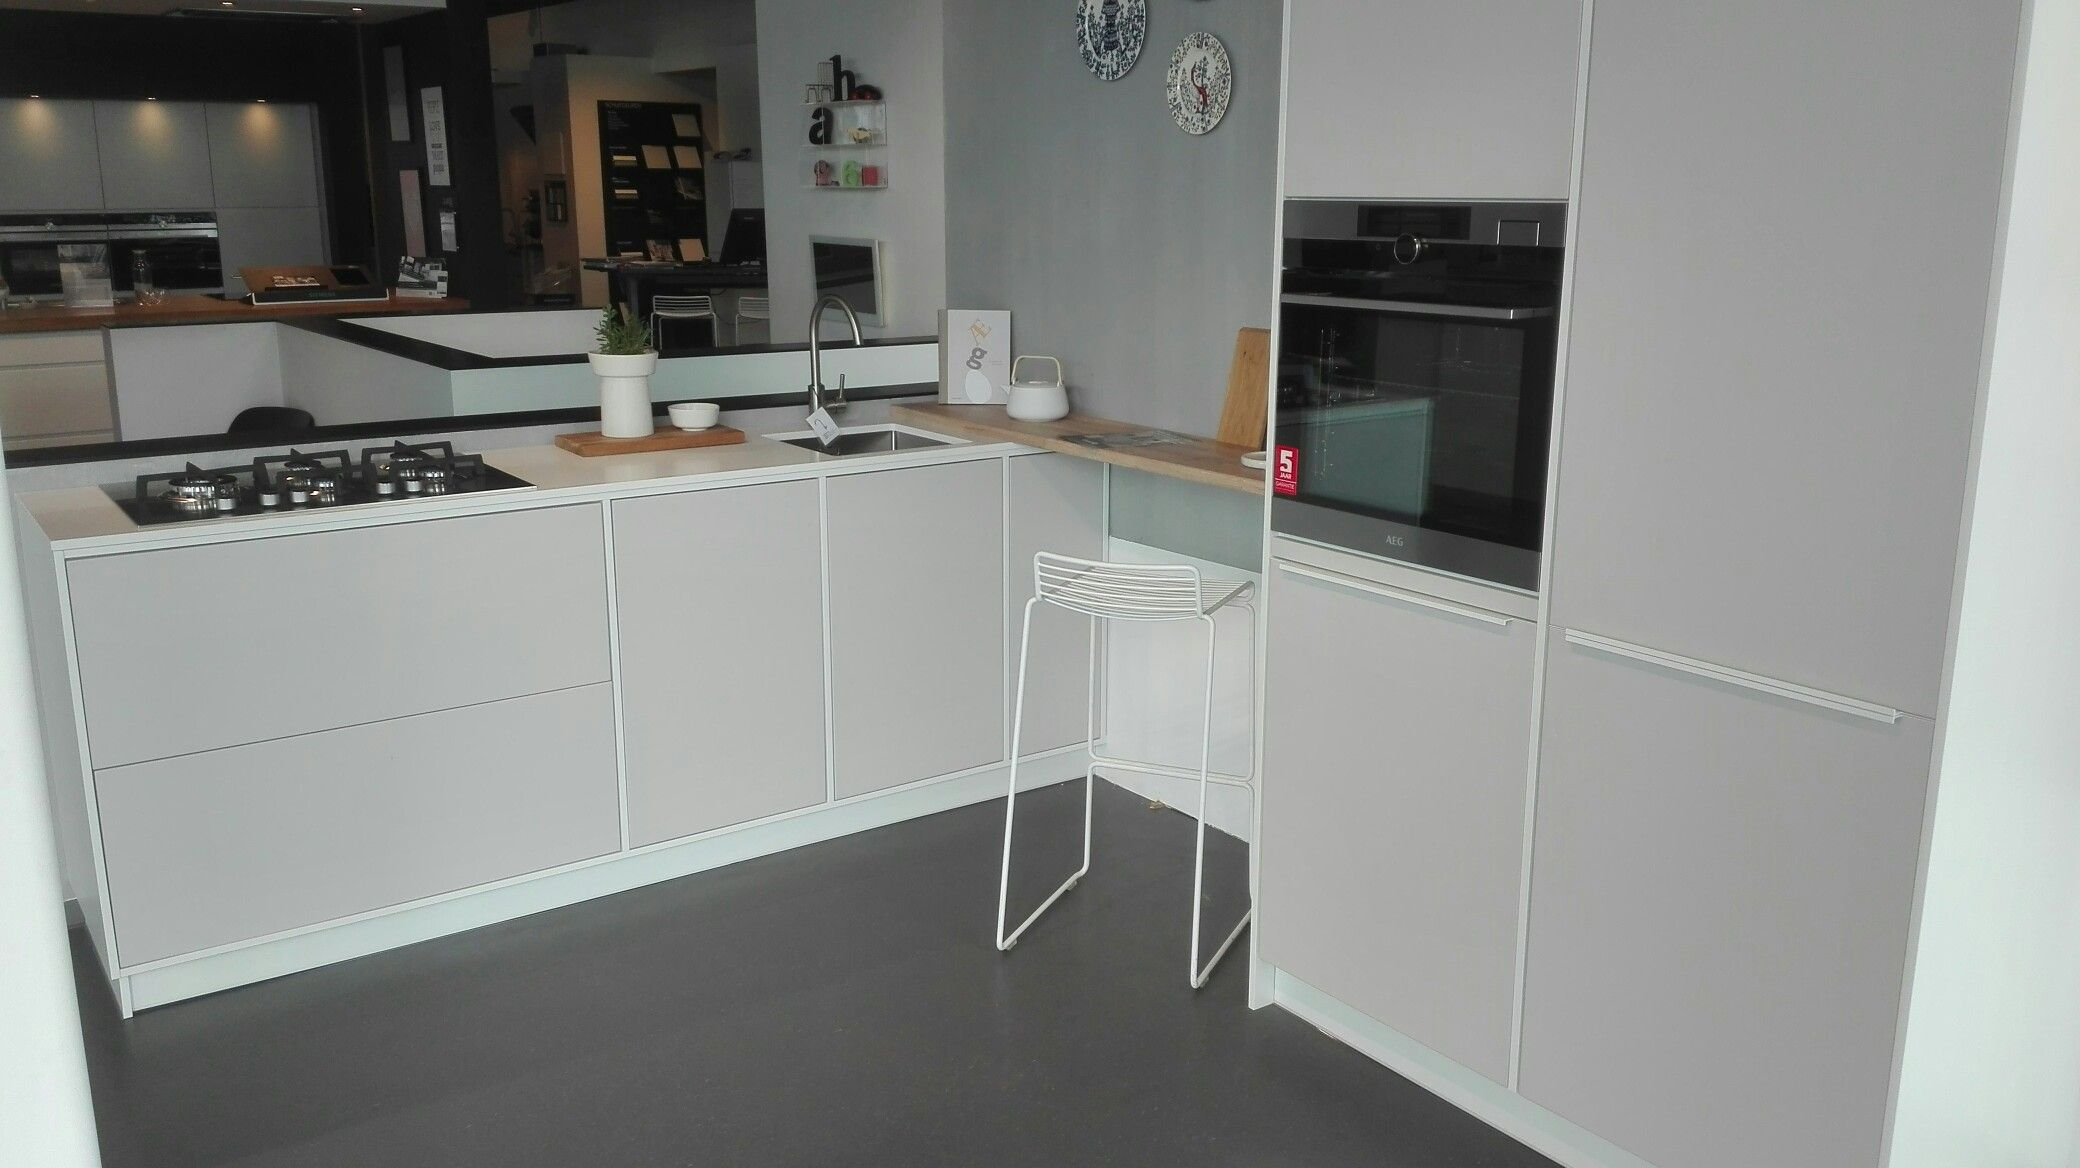 Tvis Keuken Modu Keuken In Showroom Kvik Wateringen Licht Grijs Push Open